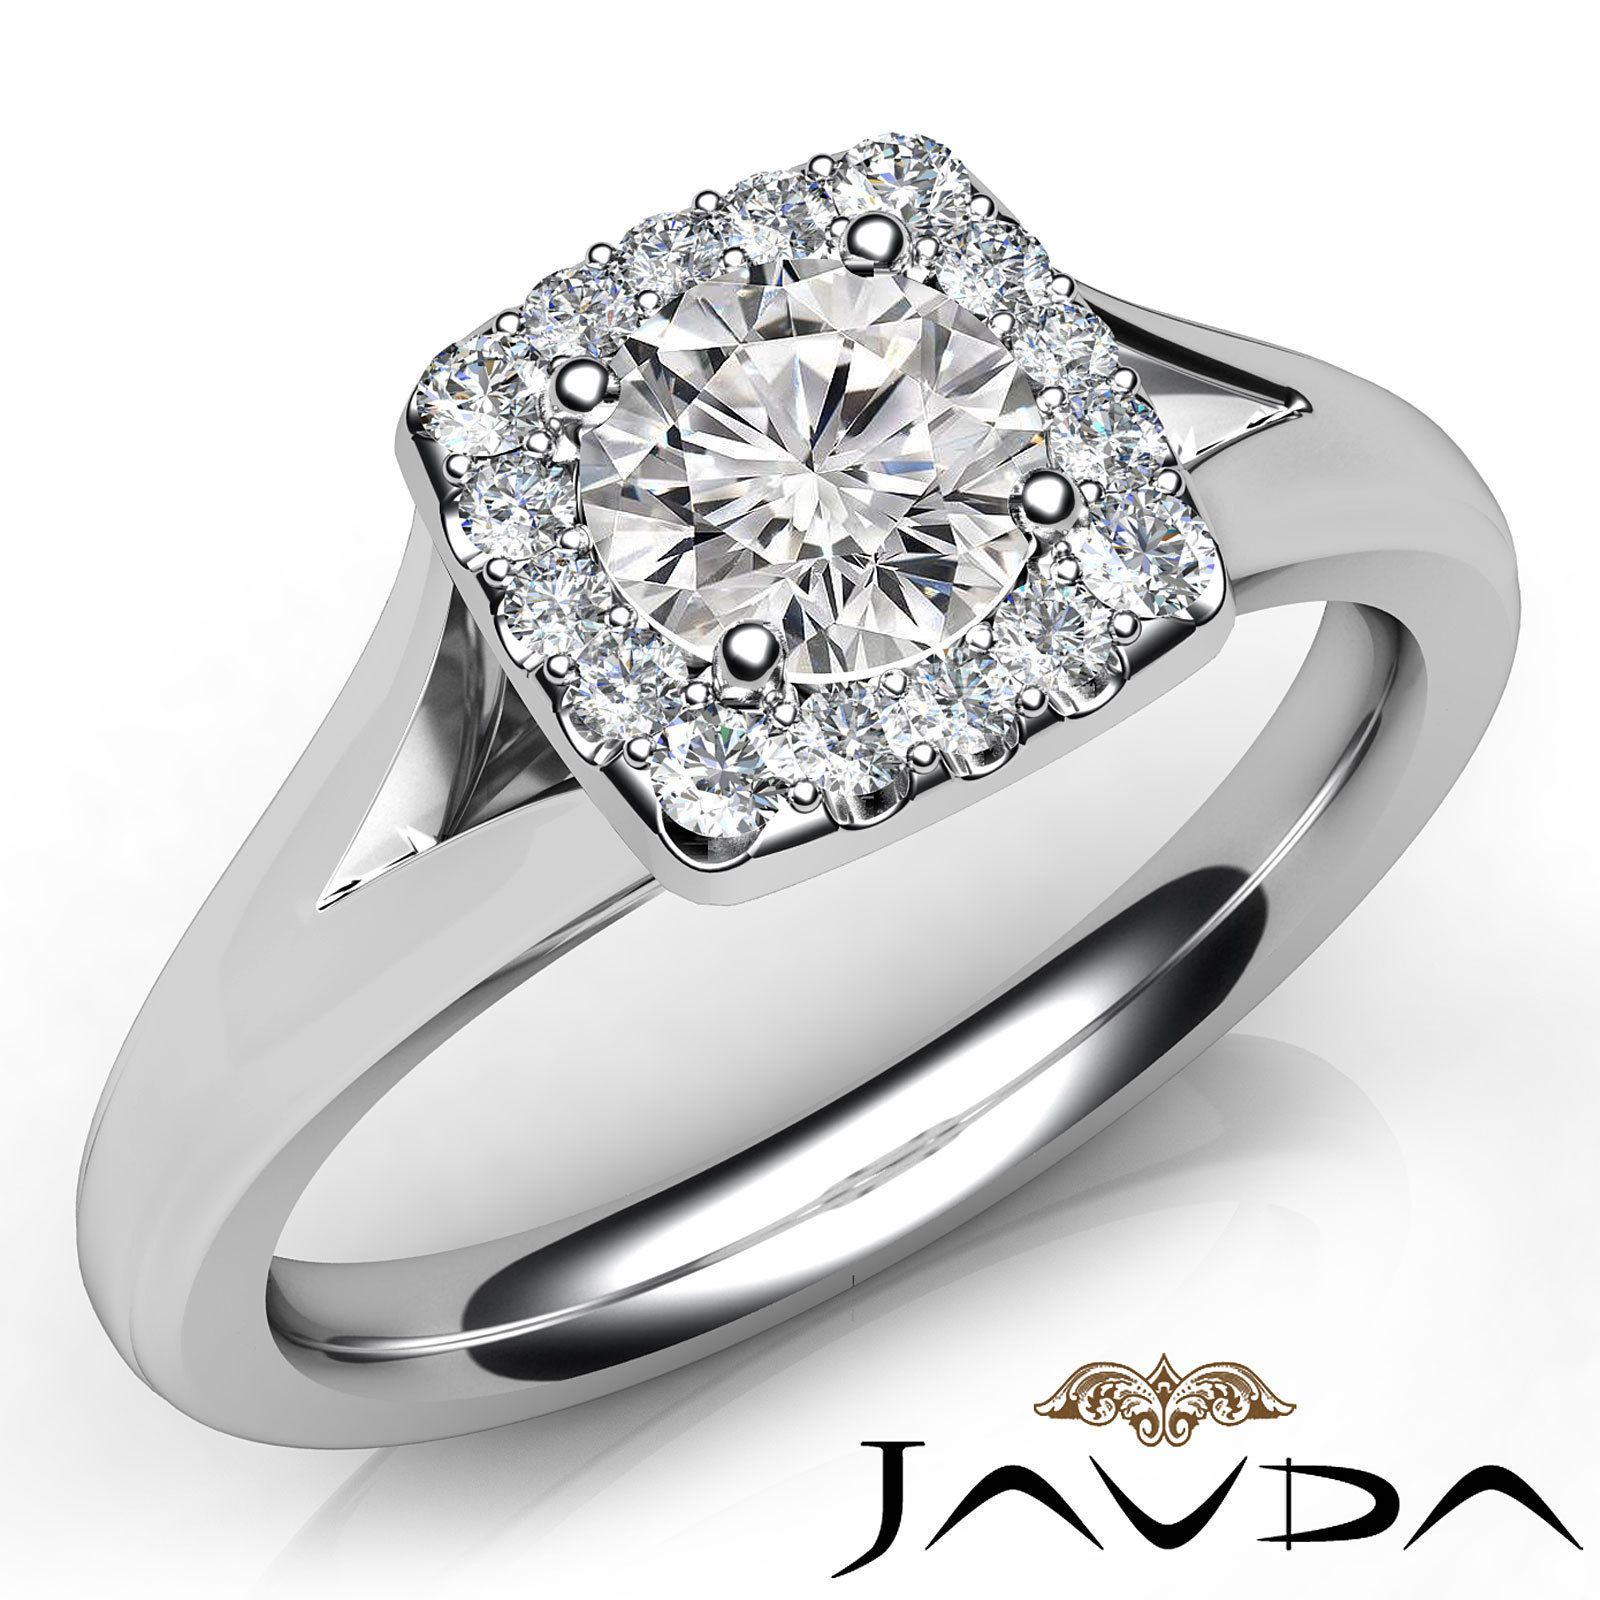 Lustful round diamond halo pave engagement ring gia e vvs k white